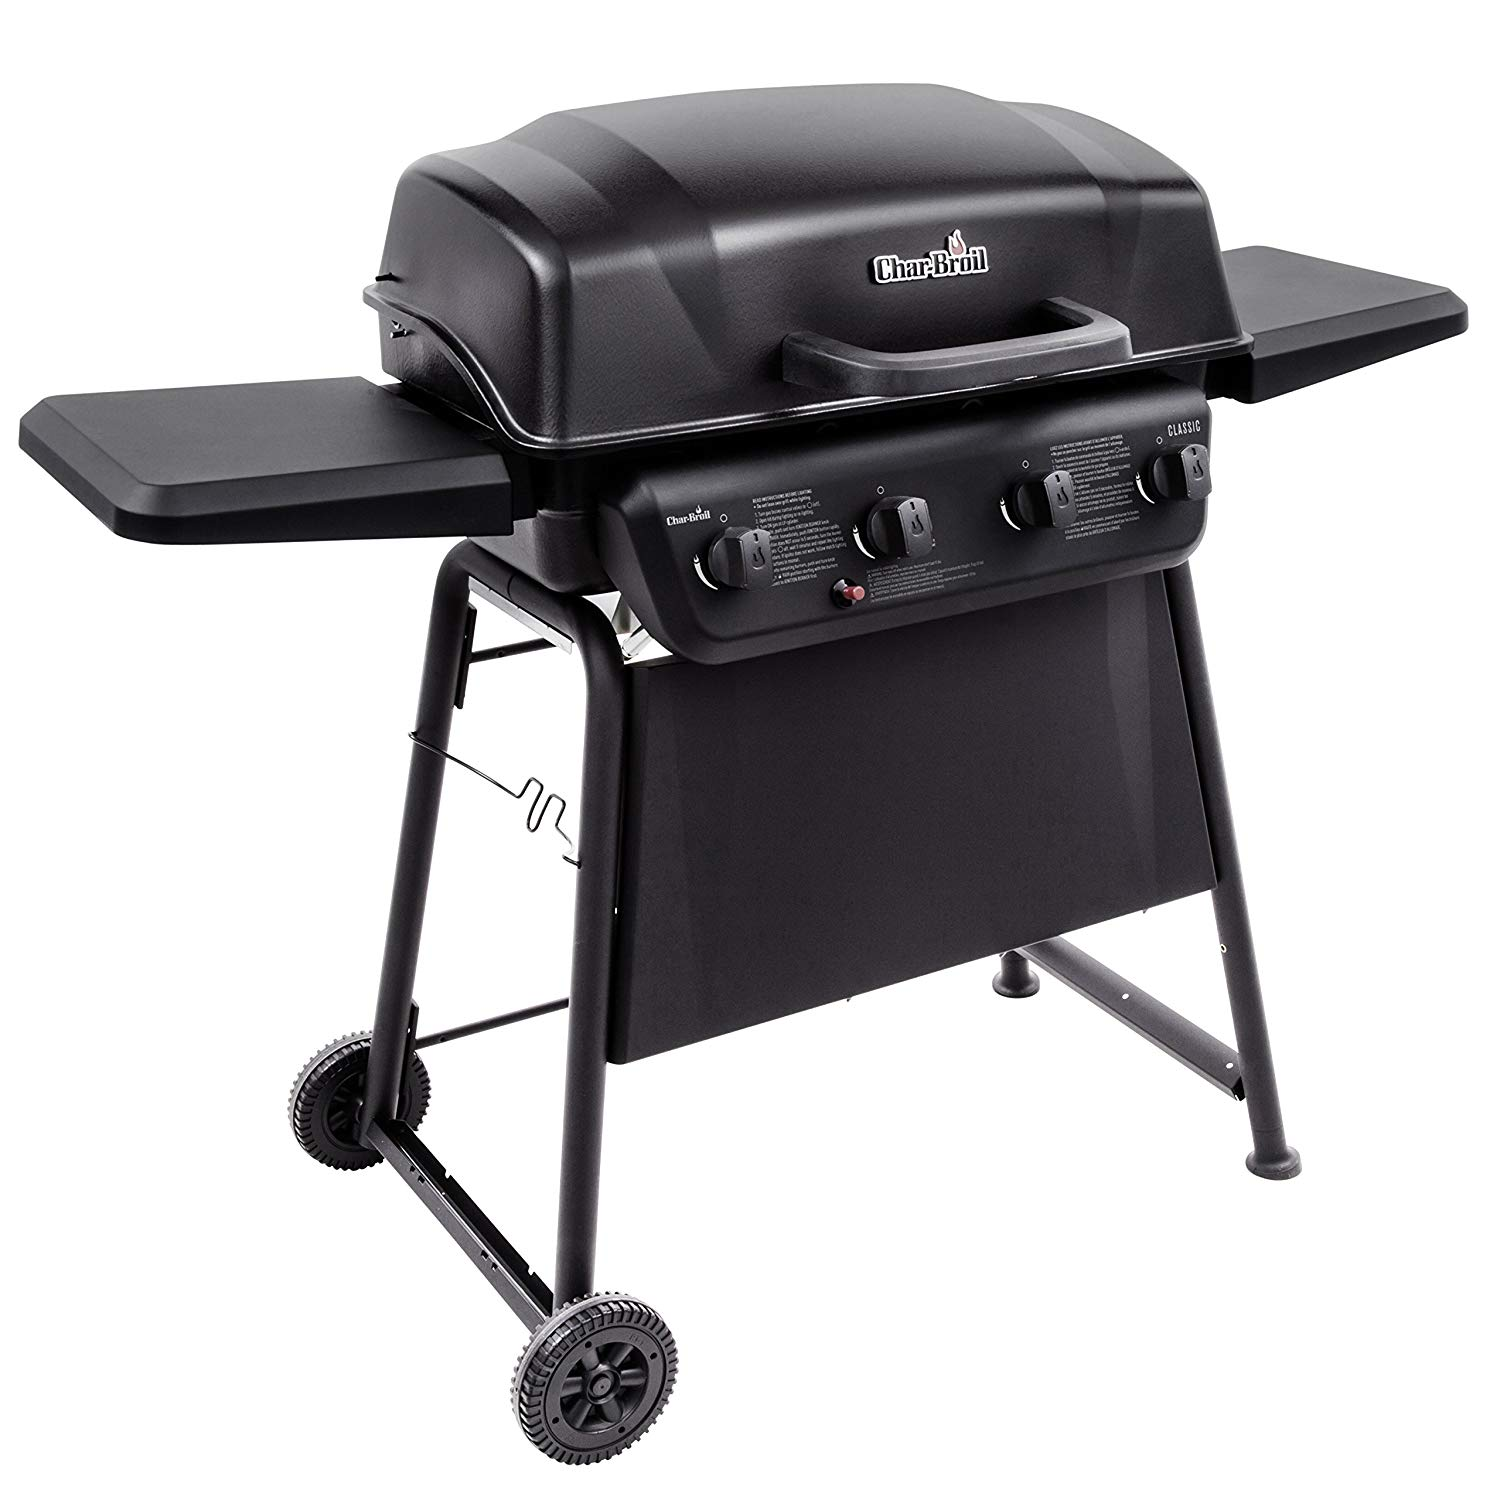 Best Propane Grills 2020 5 Best Propane Gas Grills 2020   How to Pick the Best Propane Gas